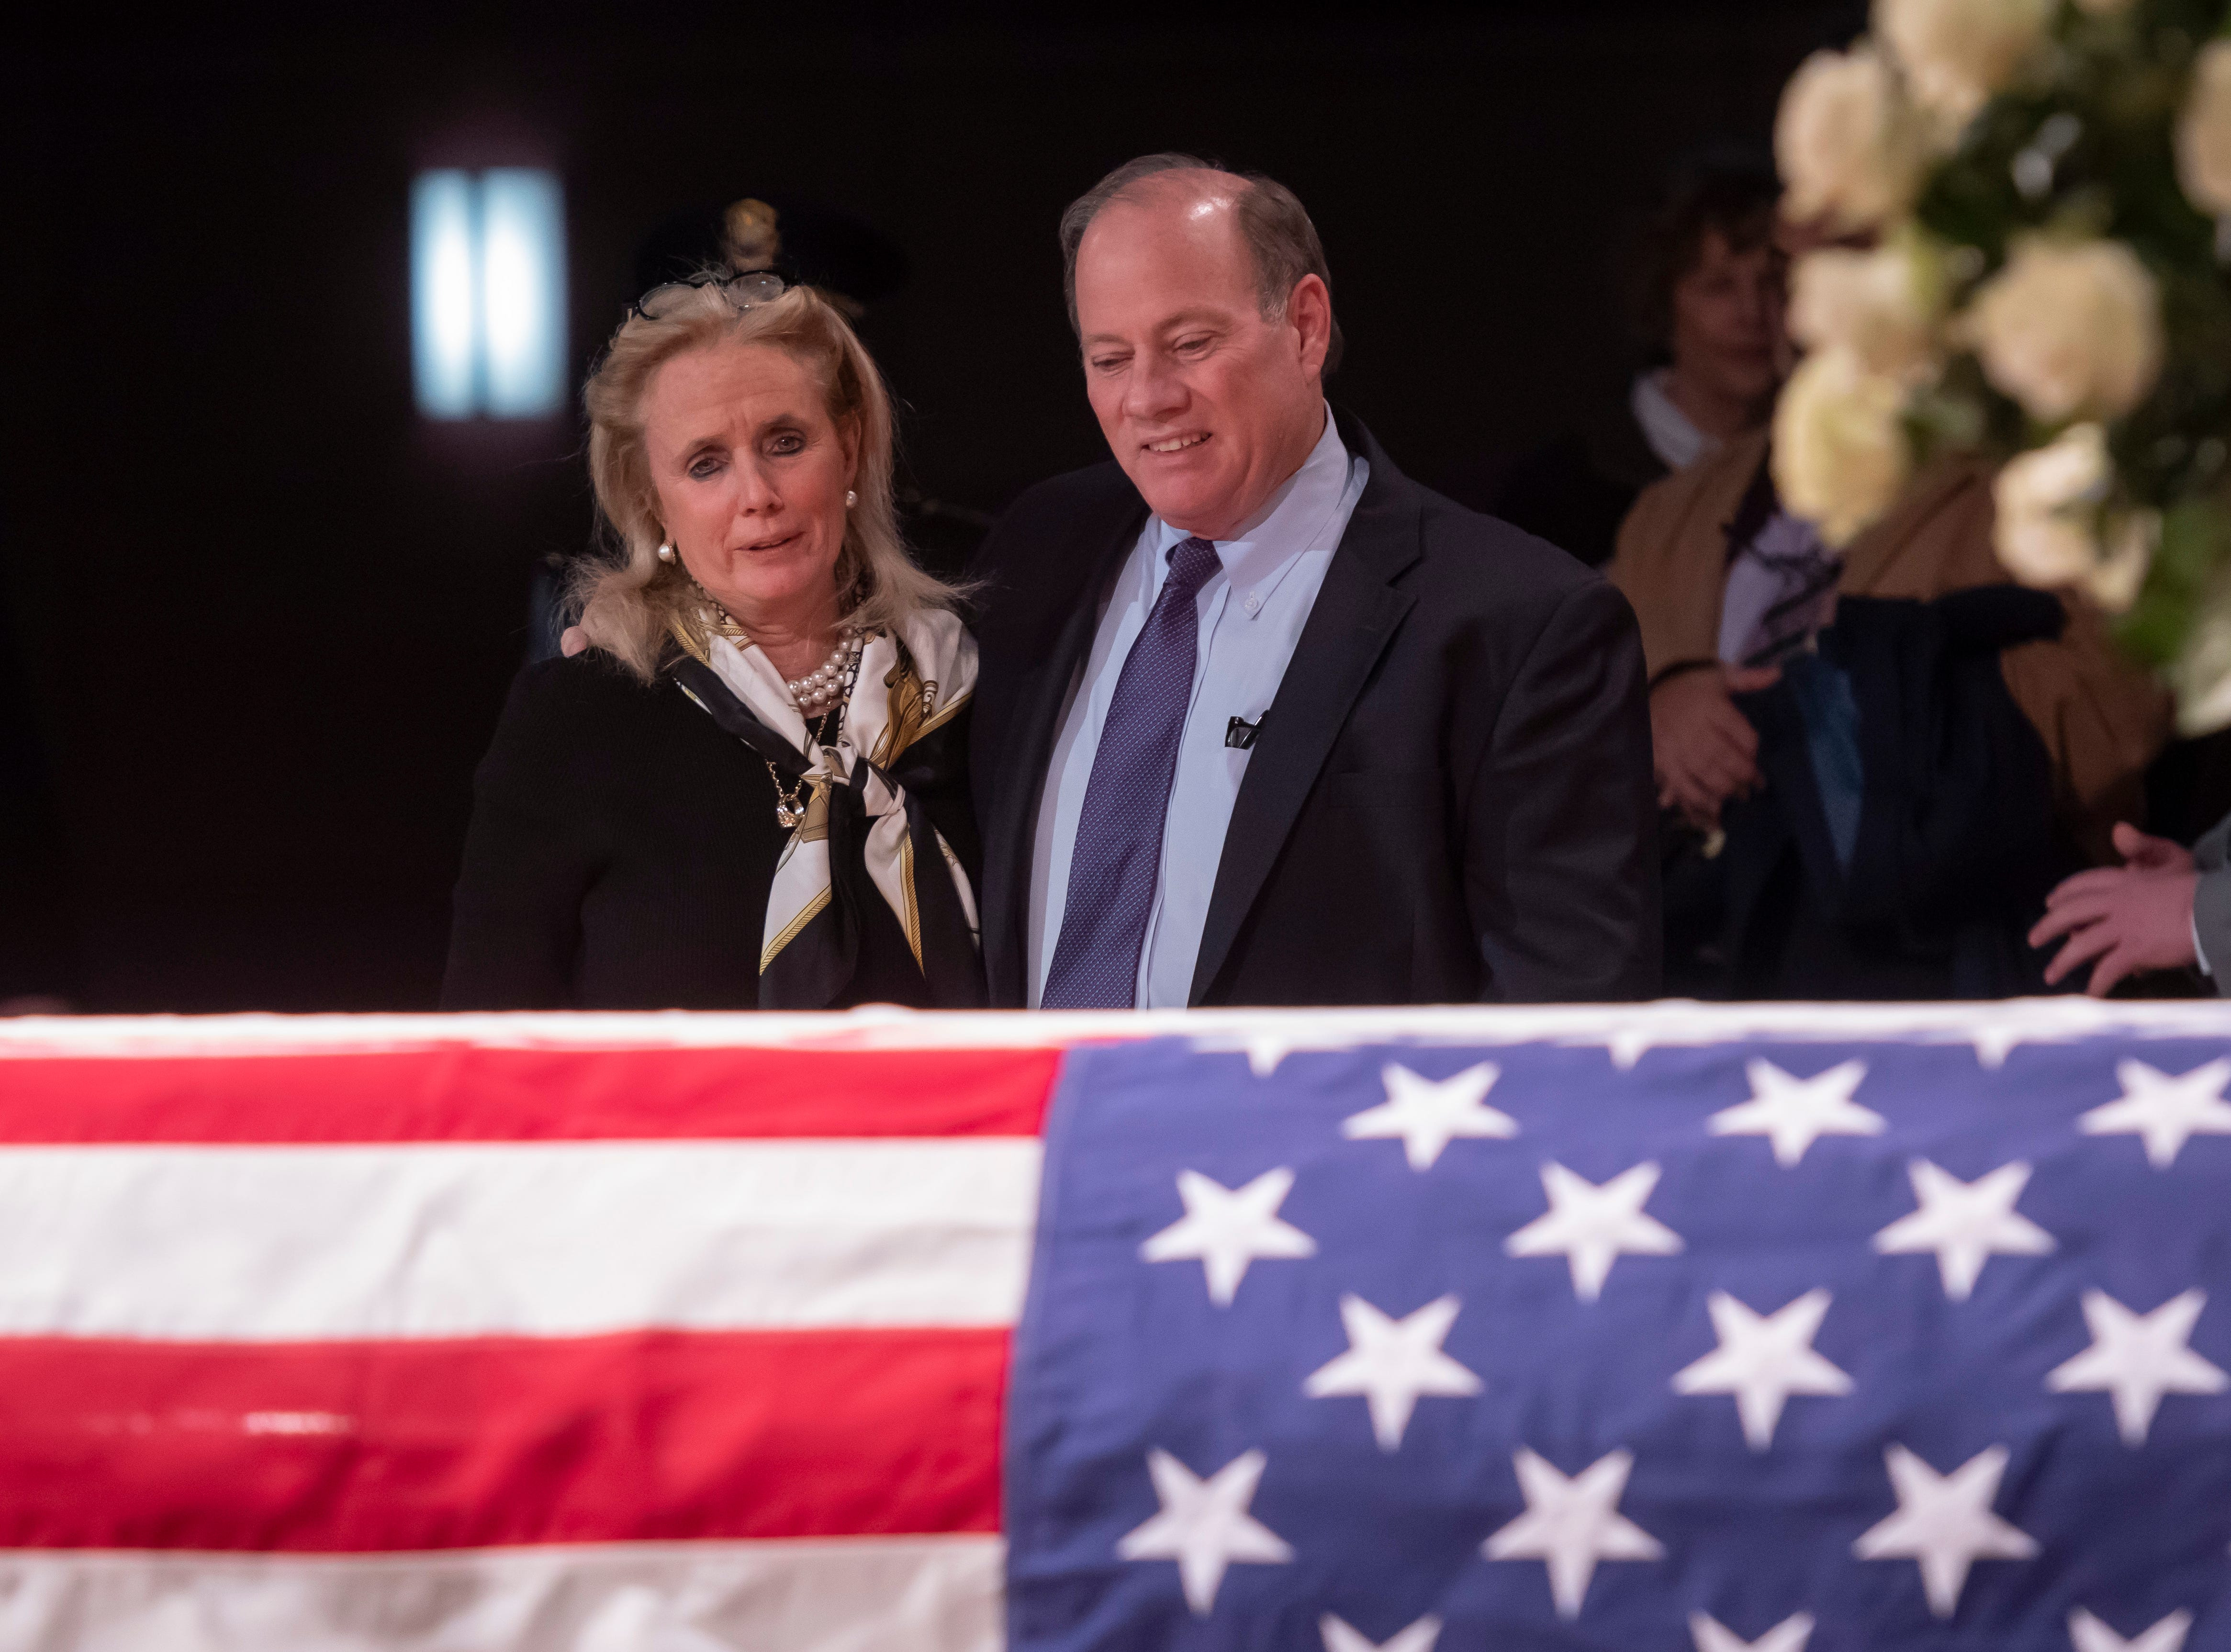 U.S. Rep. Debbie Dingell and Detroit Mayor Mike Duggan console each other during the visitation.